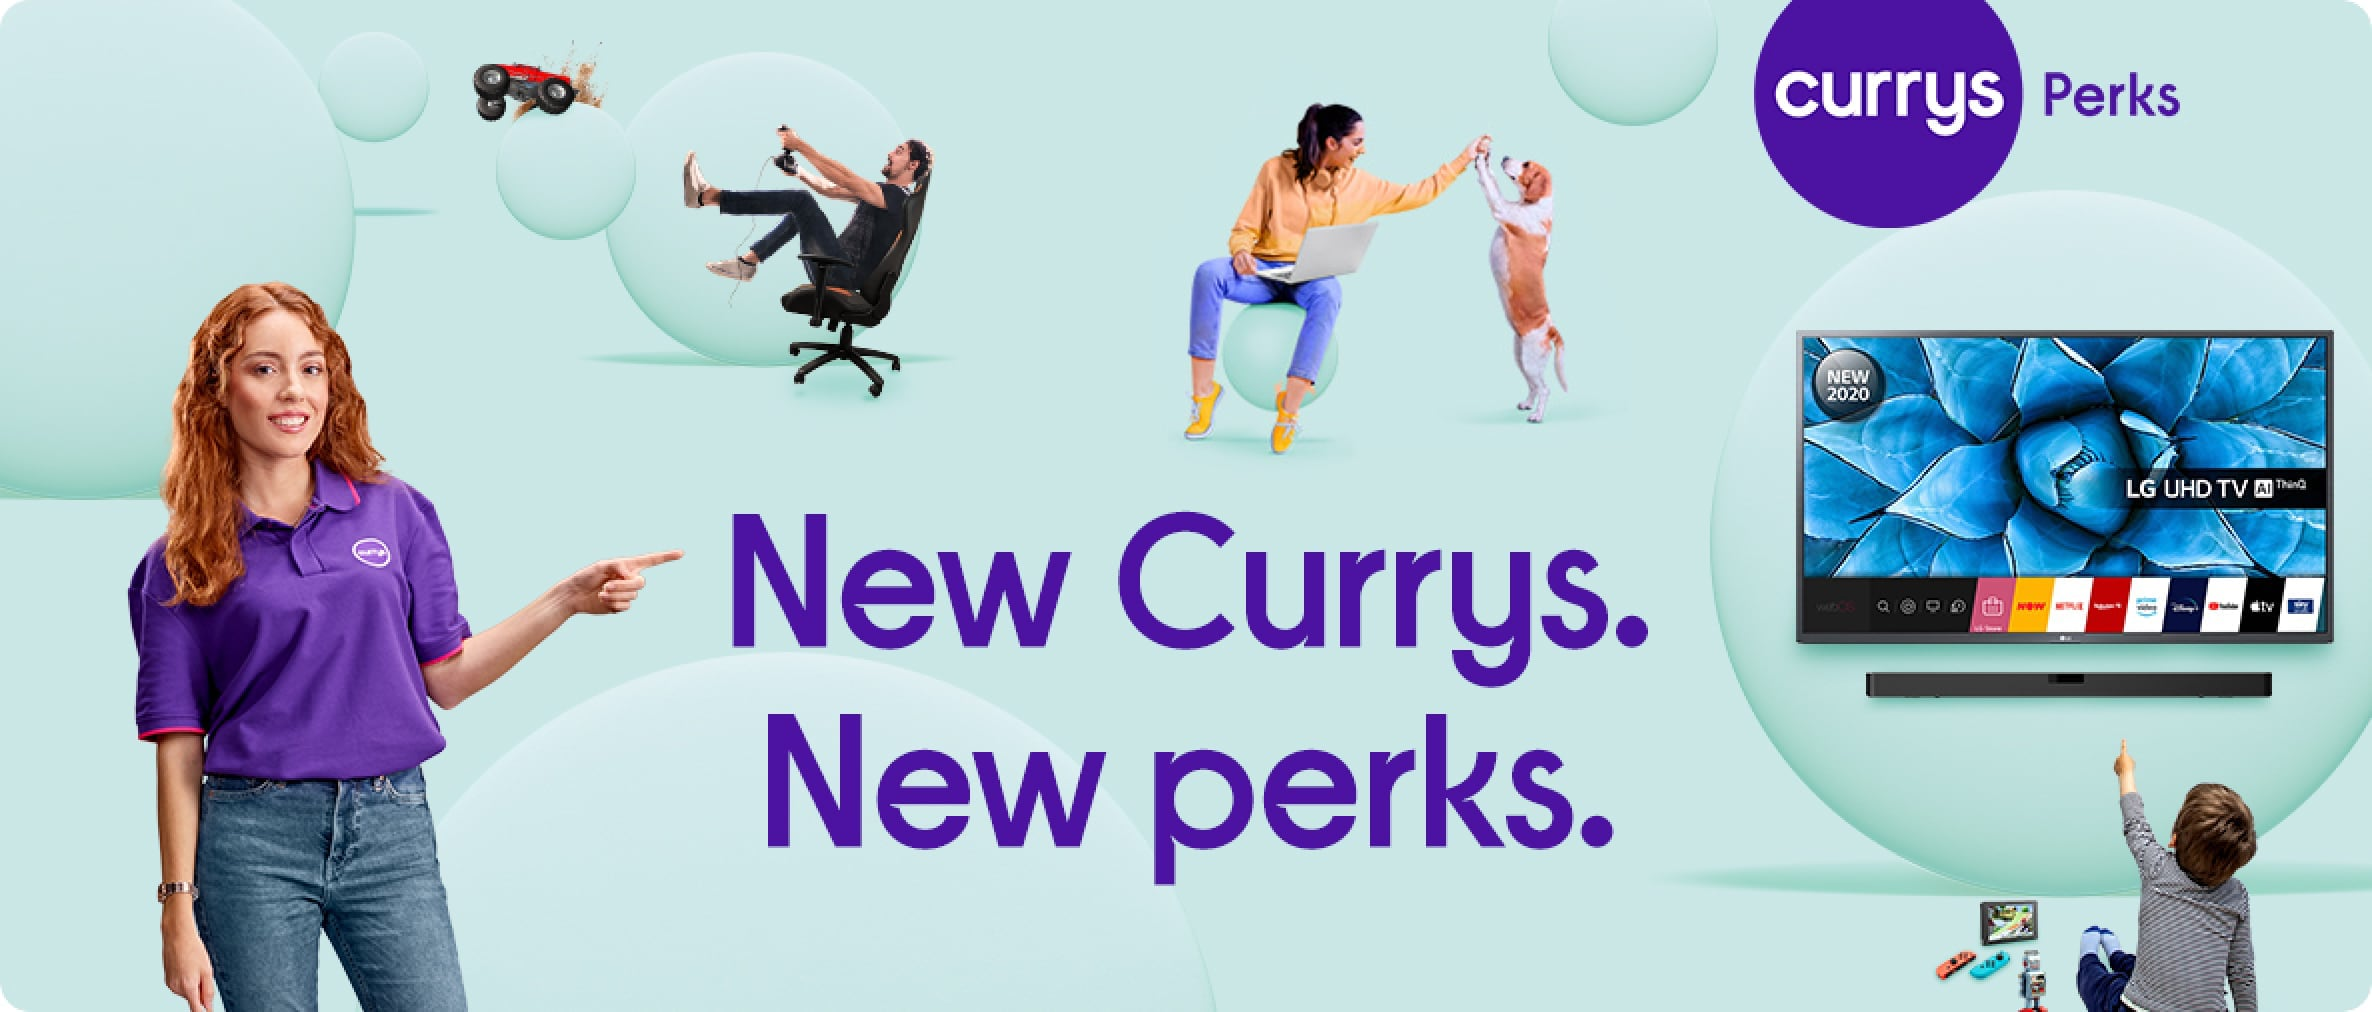 New currys. New perks.